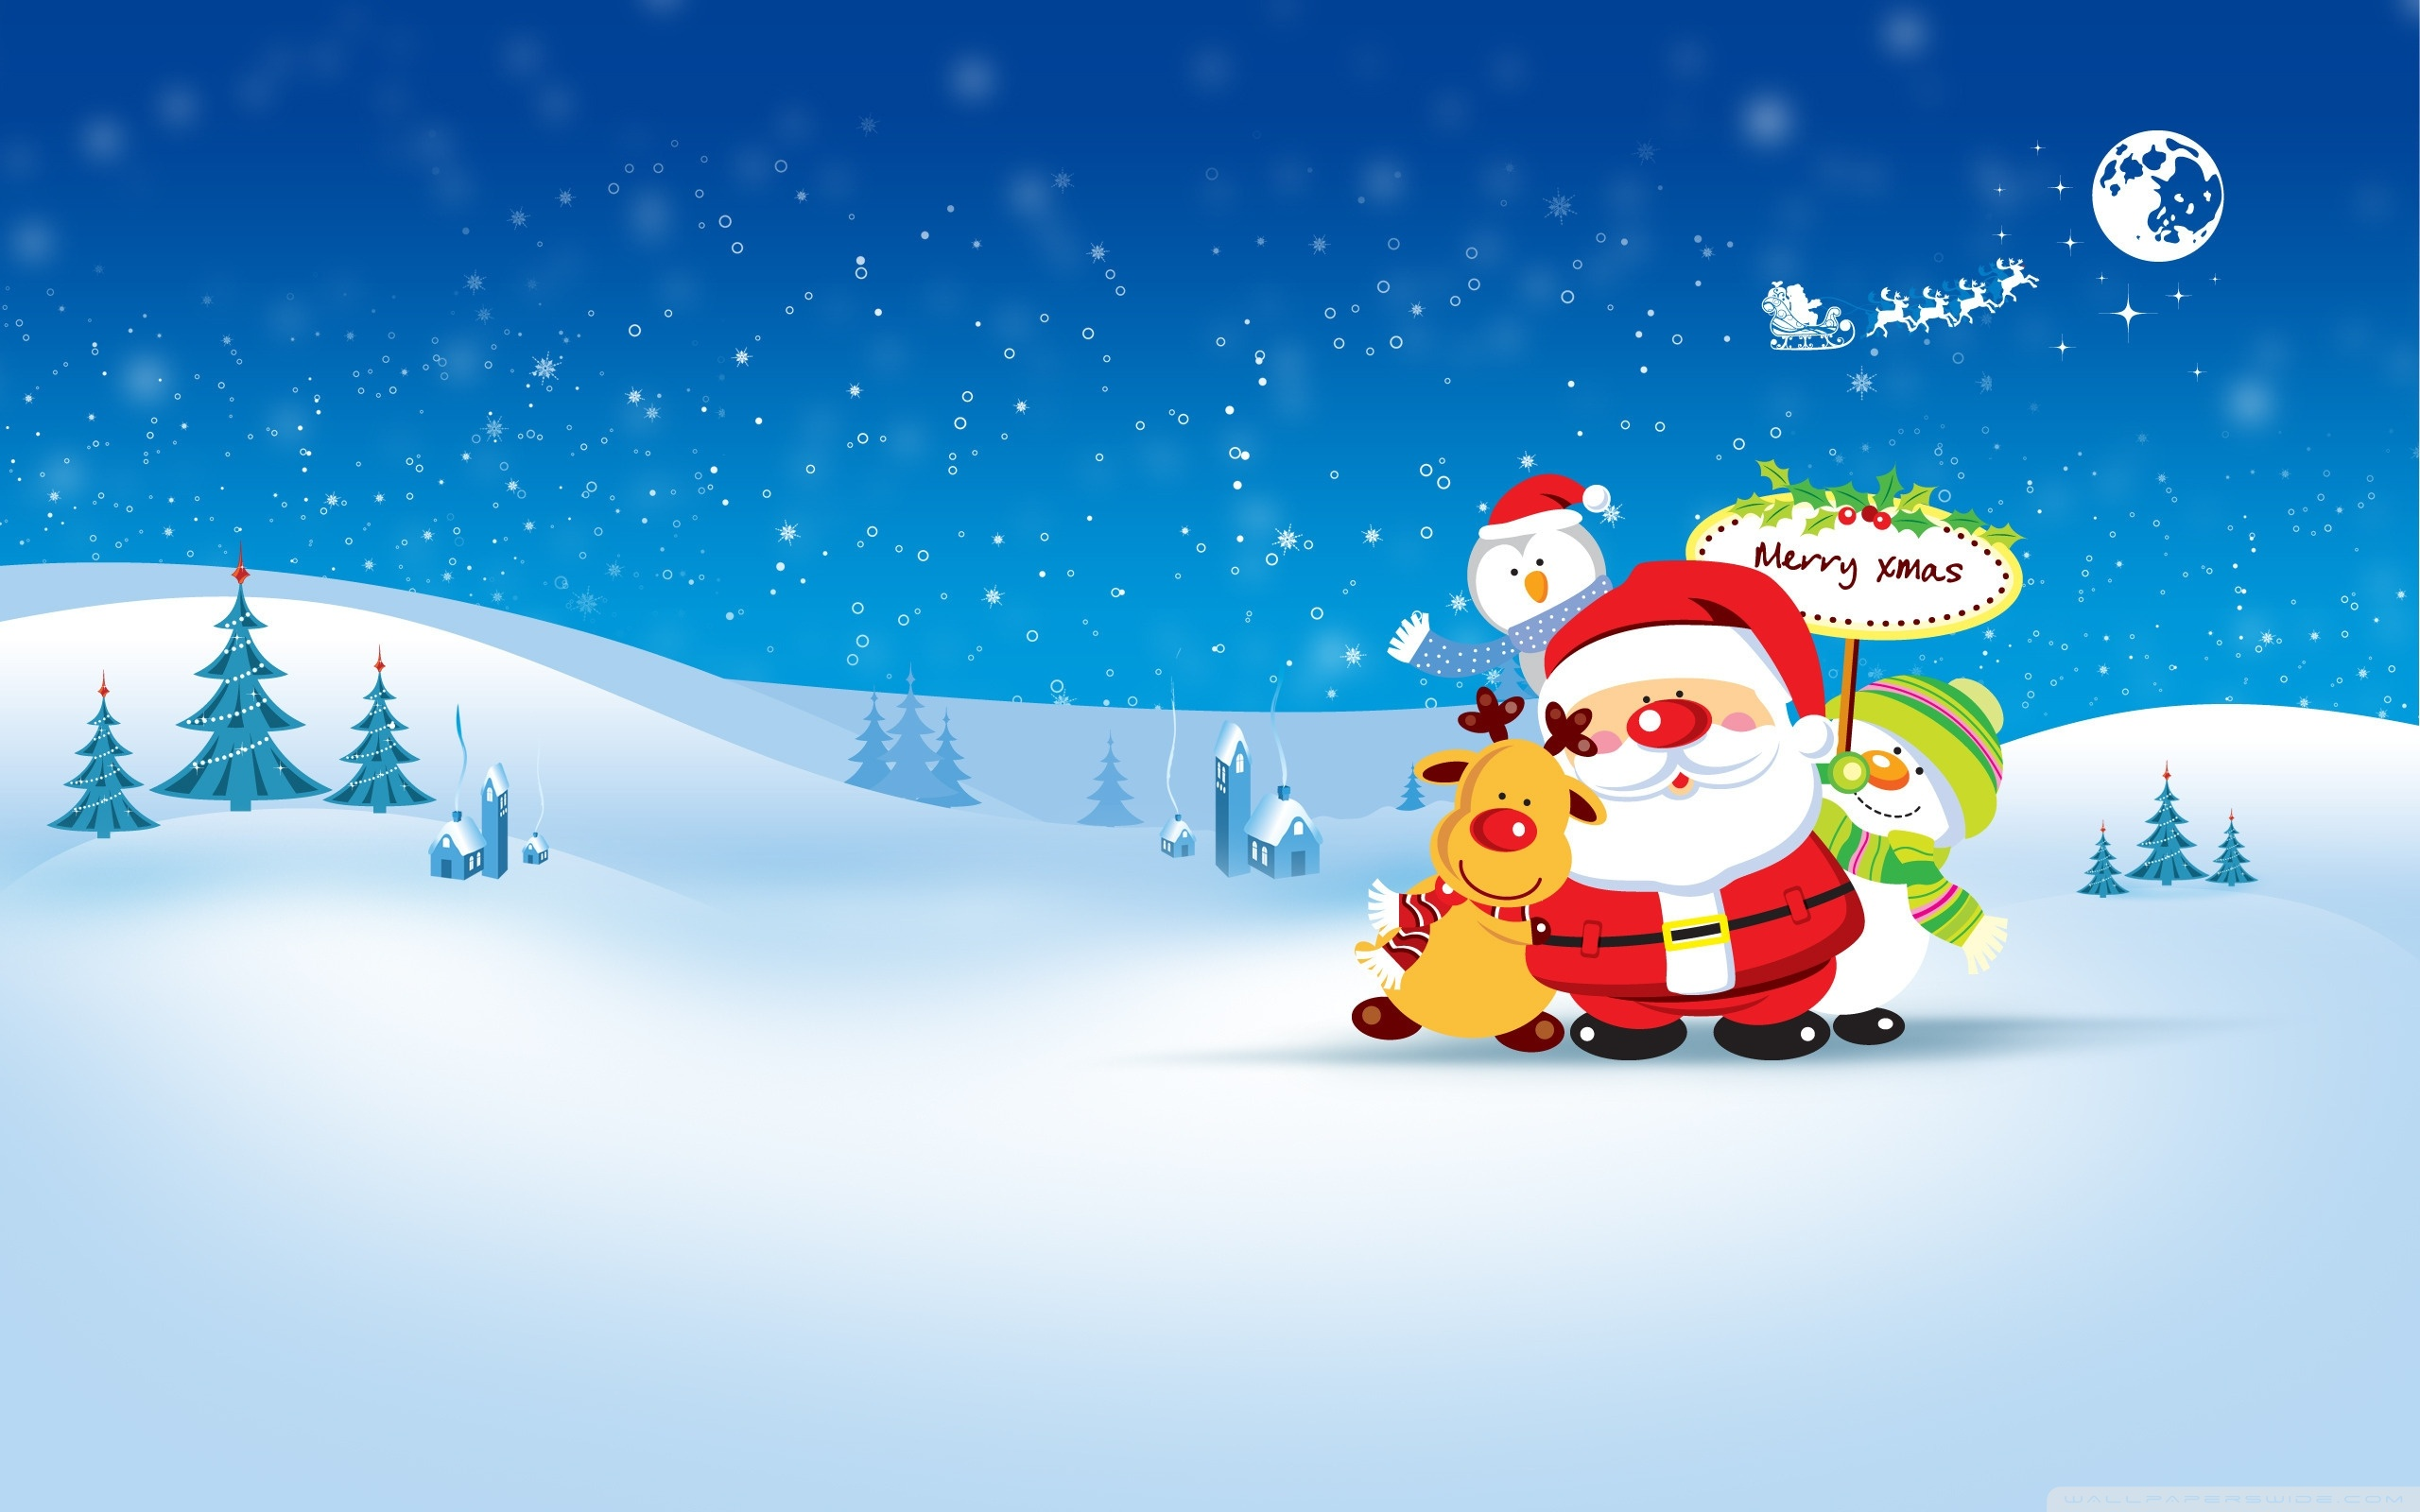 christmas-holiday-powerpoint-templates-free-Christmas-Holiday-PowerPoint-Templates-Free-wallpaper-wp5603874